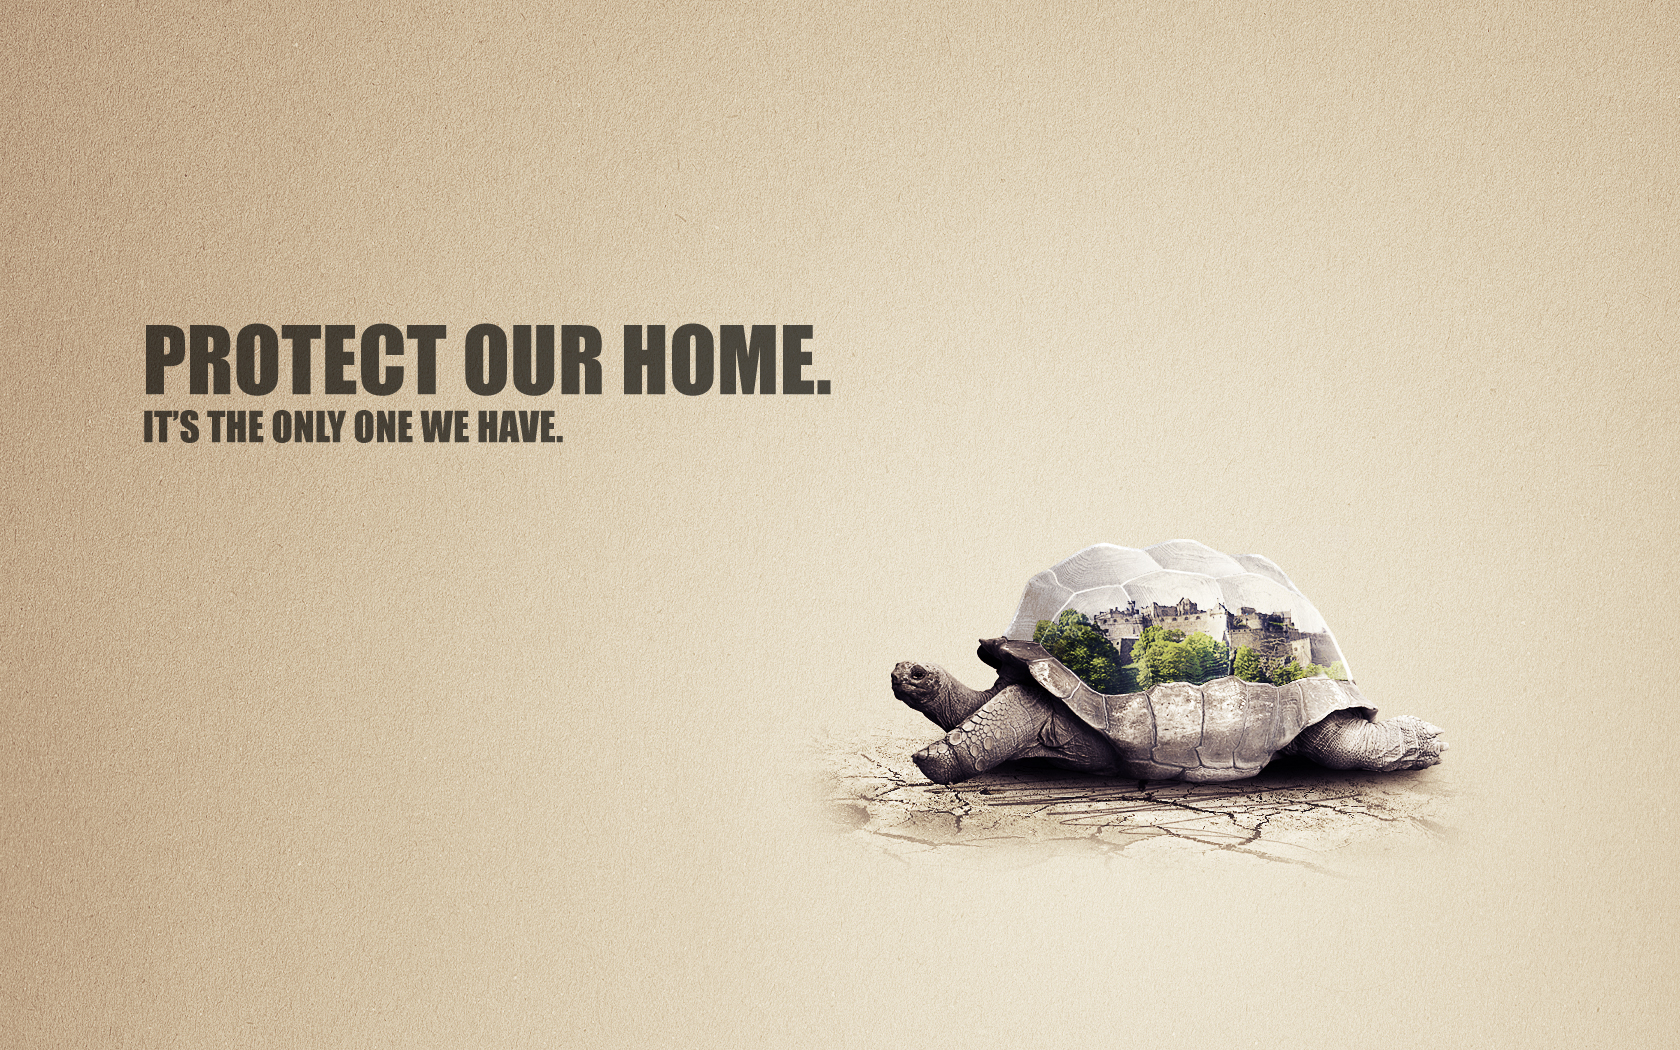 Ad Concept design process: creating an eco-friendly concept design in photoshop